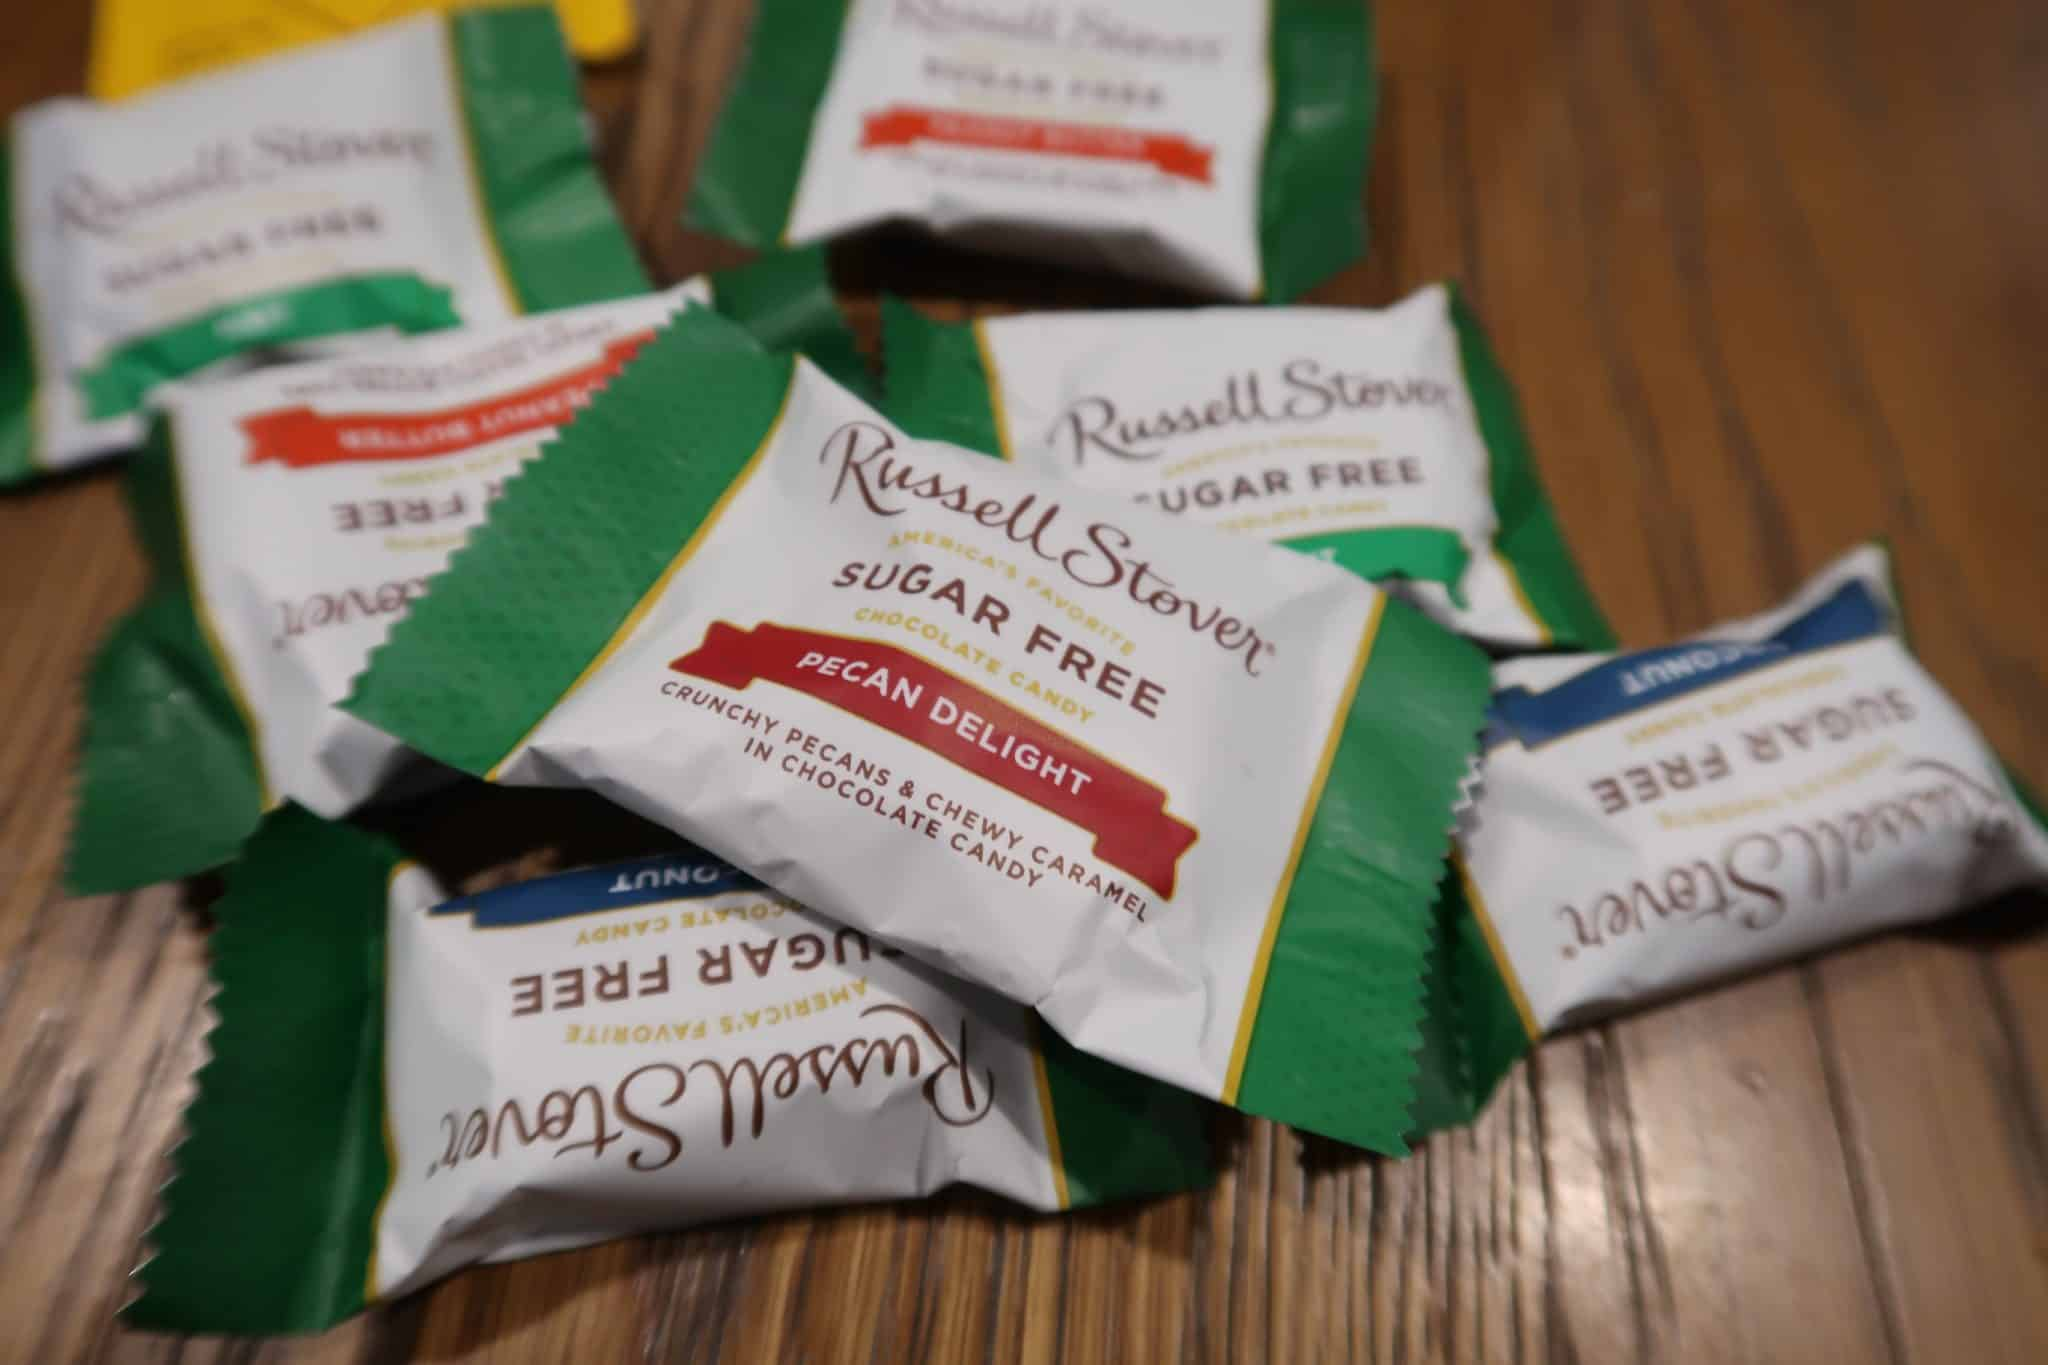 *RARE* $3.50 OFF Russell Stover Sugar Free Chocolates